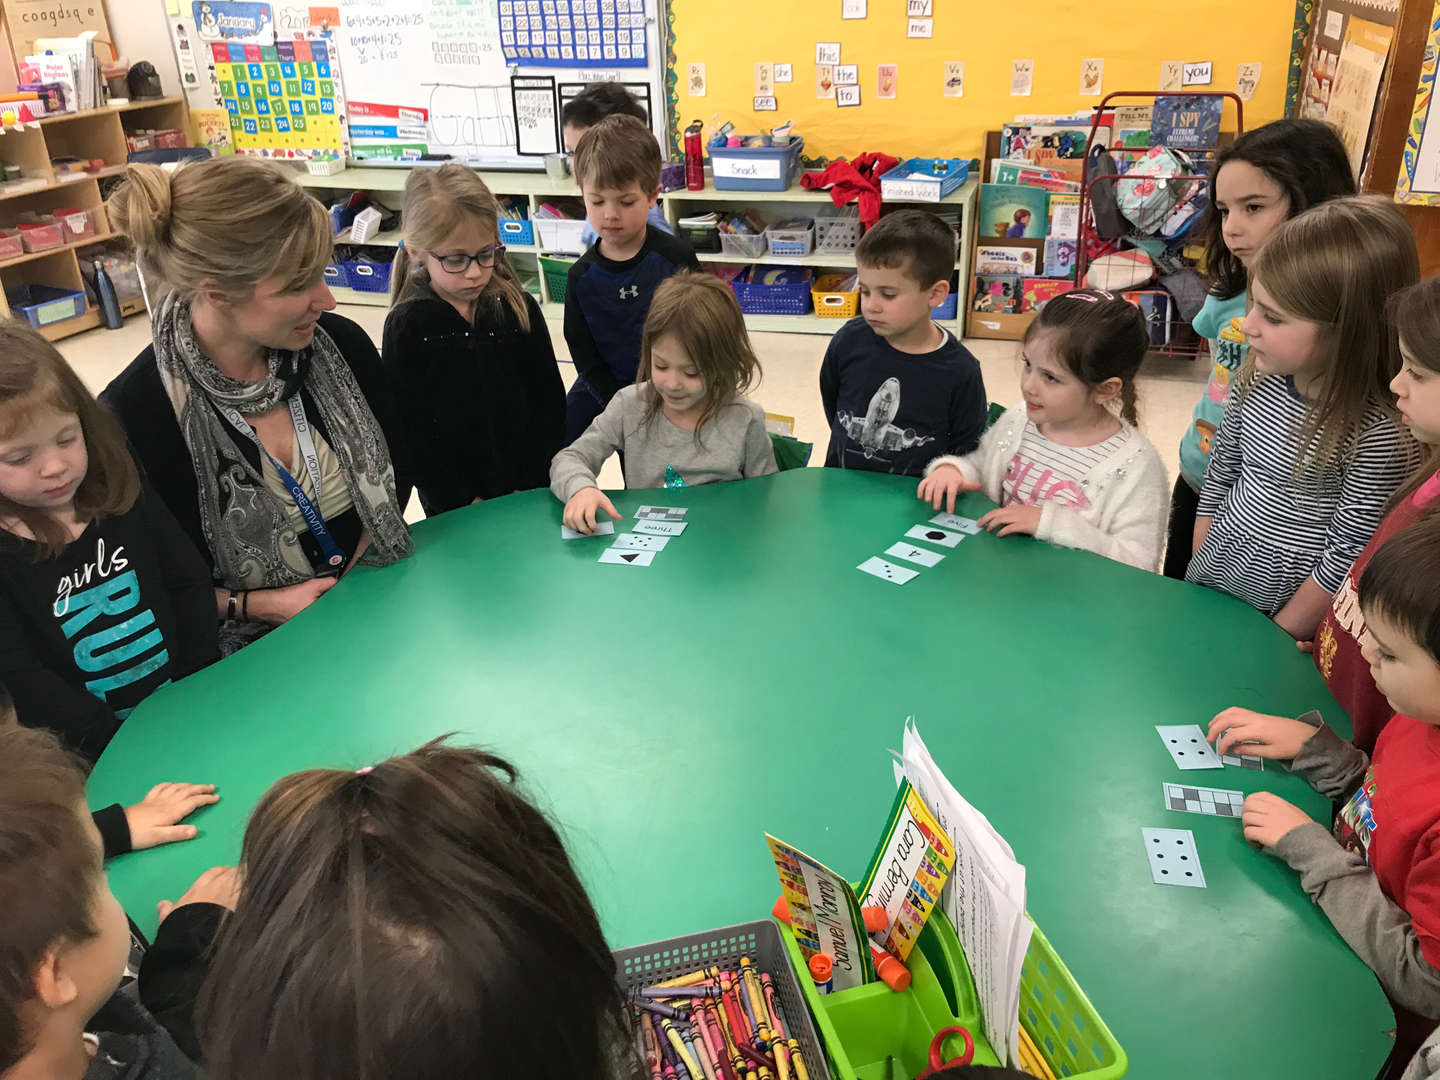 Students and teacher playing a math game